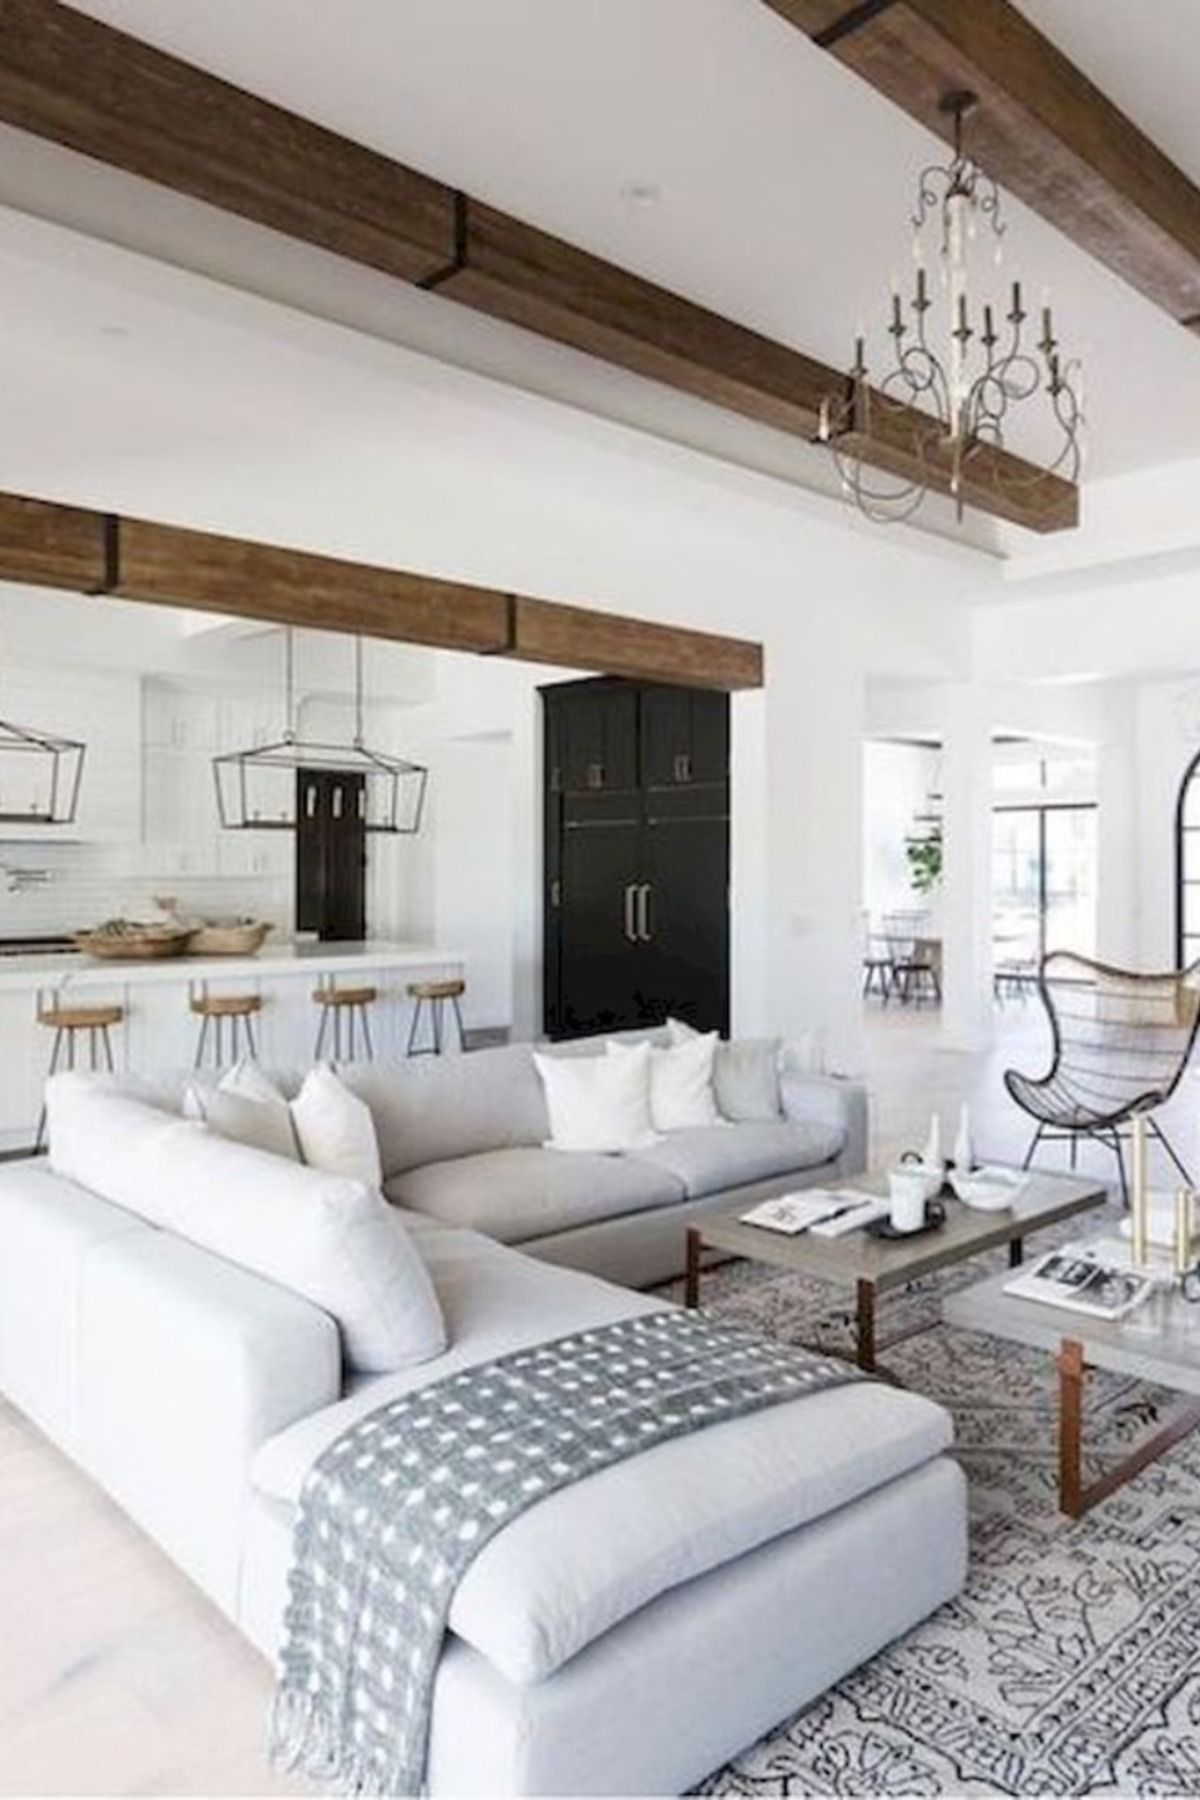 Interior Design Ideas For Your Home In 2020 Home Home Decor Home Living Room